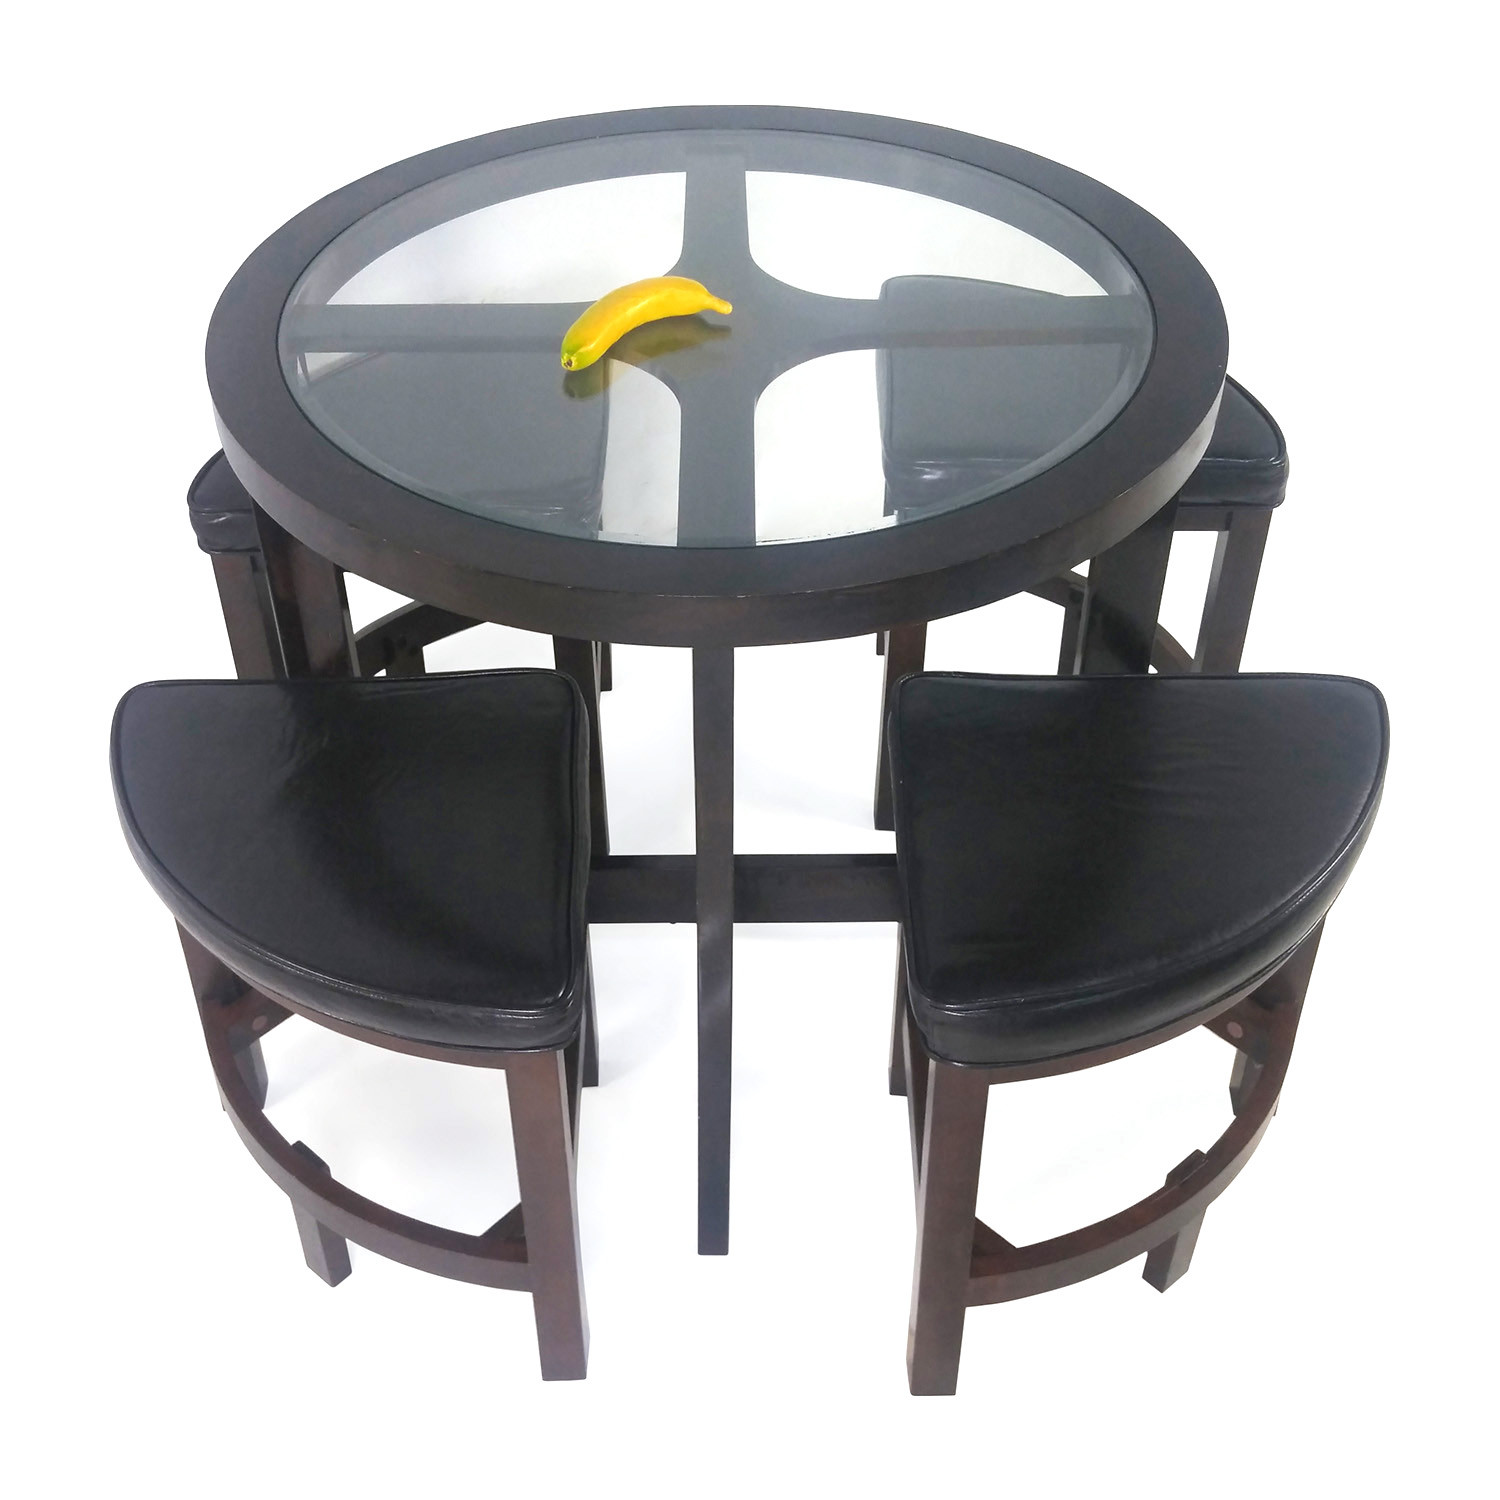 Best ideas about Amazon Dining Table . Save or Pin OFF Amazon Circular Dinette with 4 chairs Tables Now.